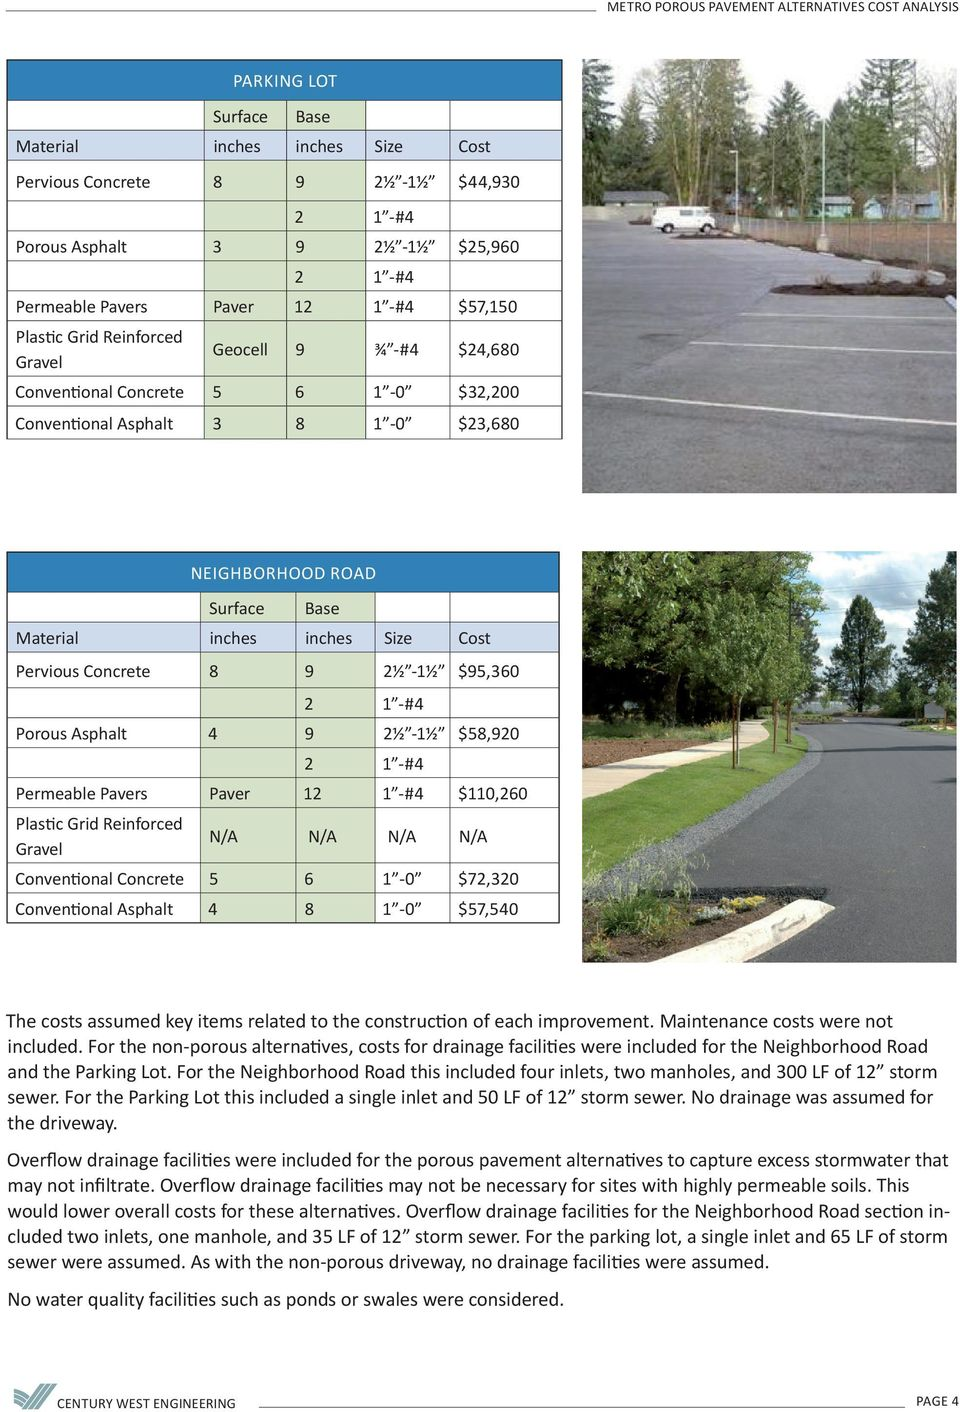 Conventional Asphalt 4 8 1-0 $57,540 The costs assumed key items related to the construction of each improvement. Maintenance costs were not included.